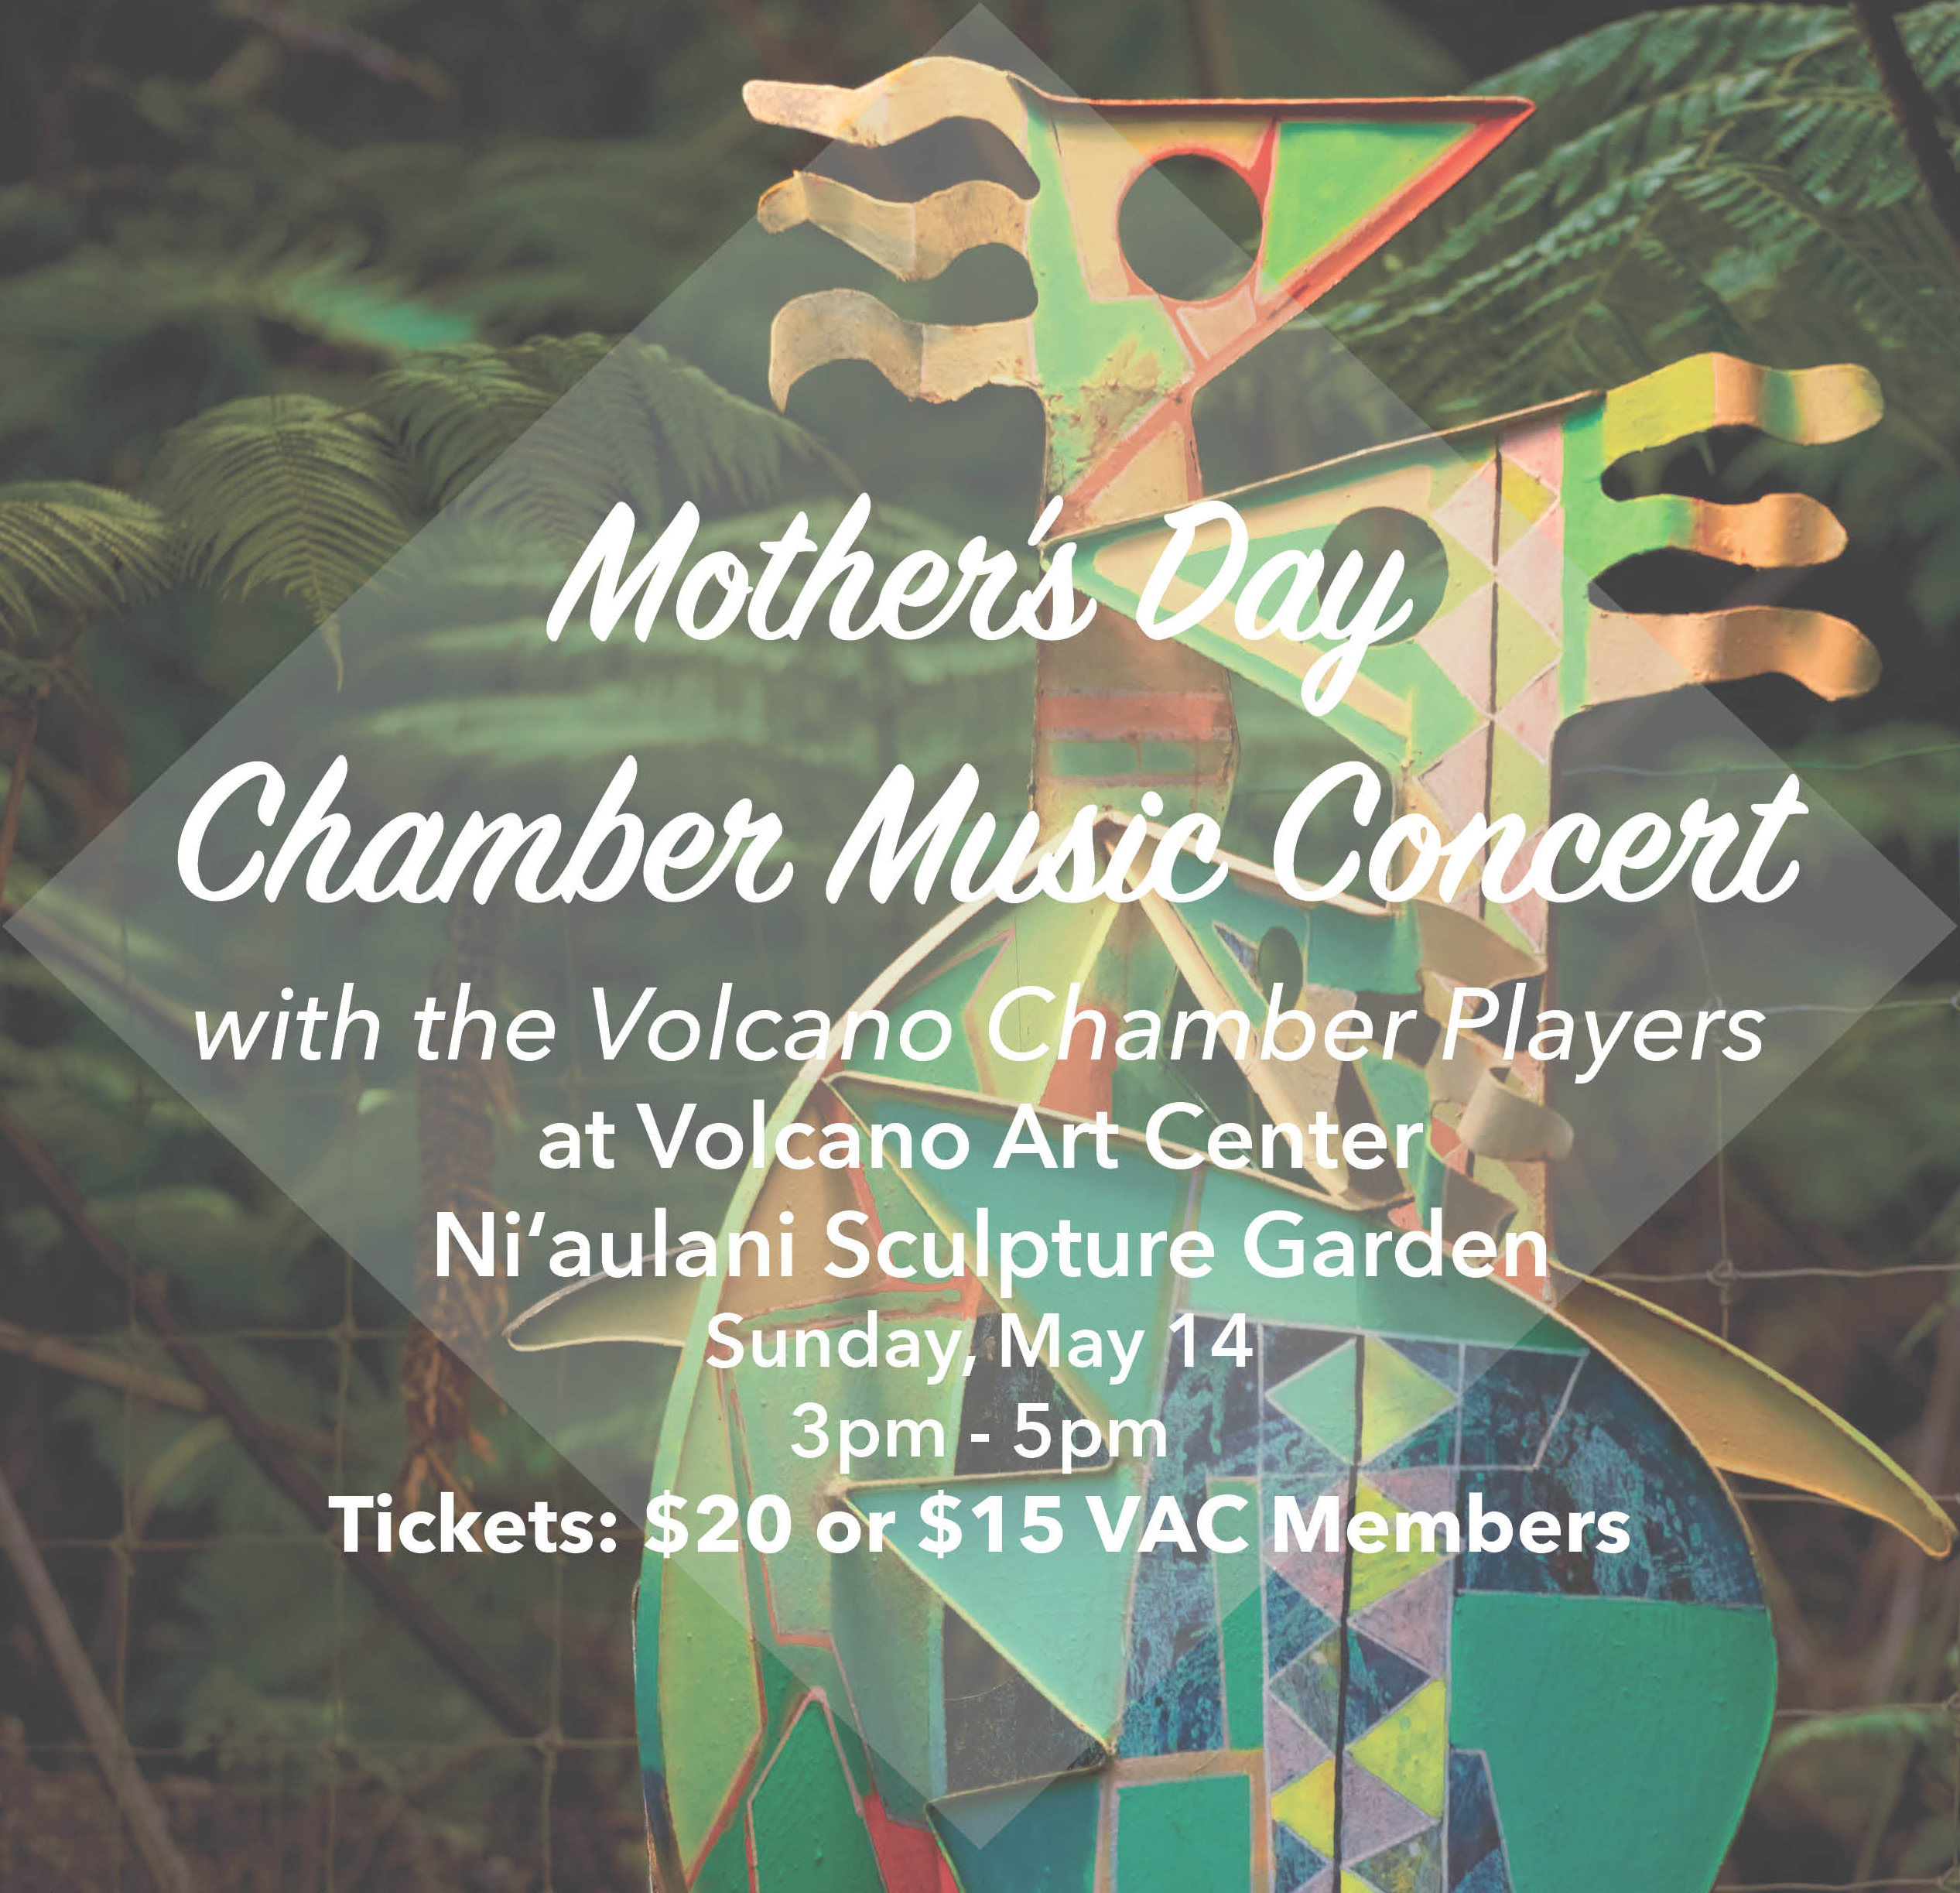 MothersDayConcert May2017 flyer crop 1